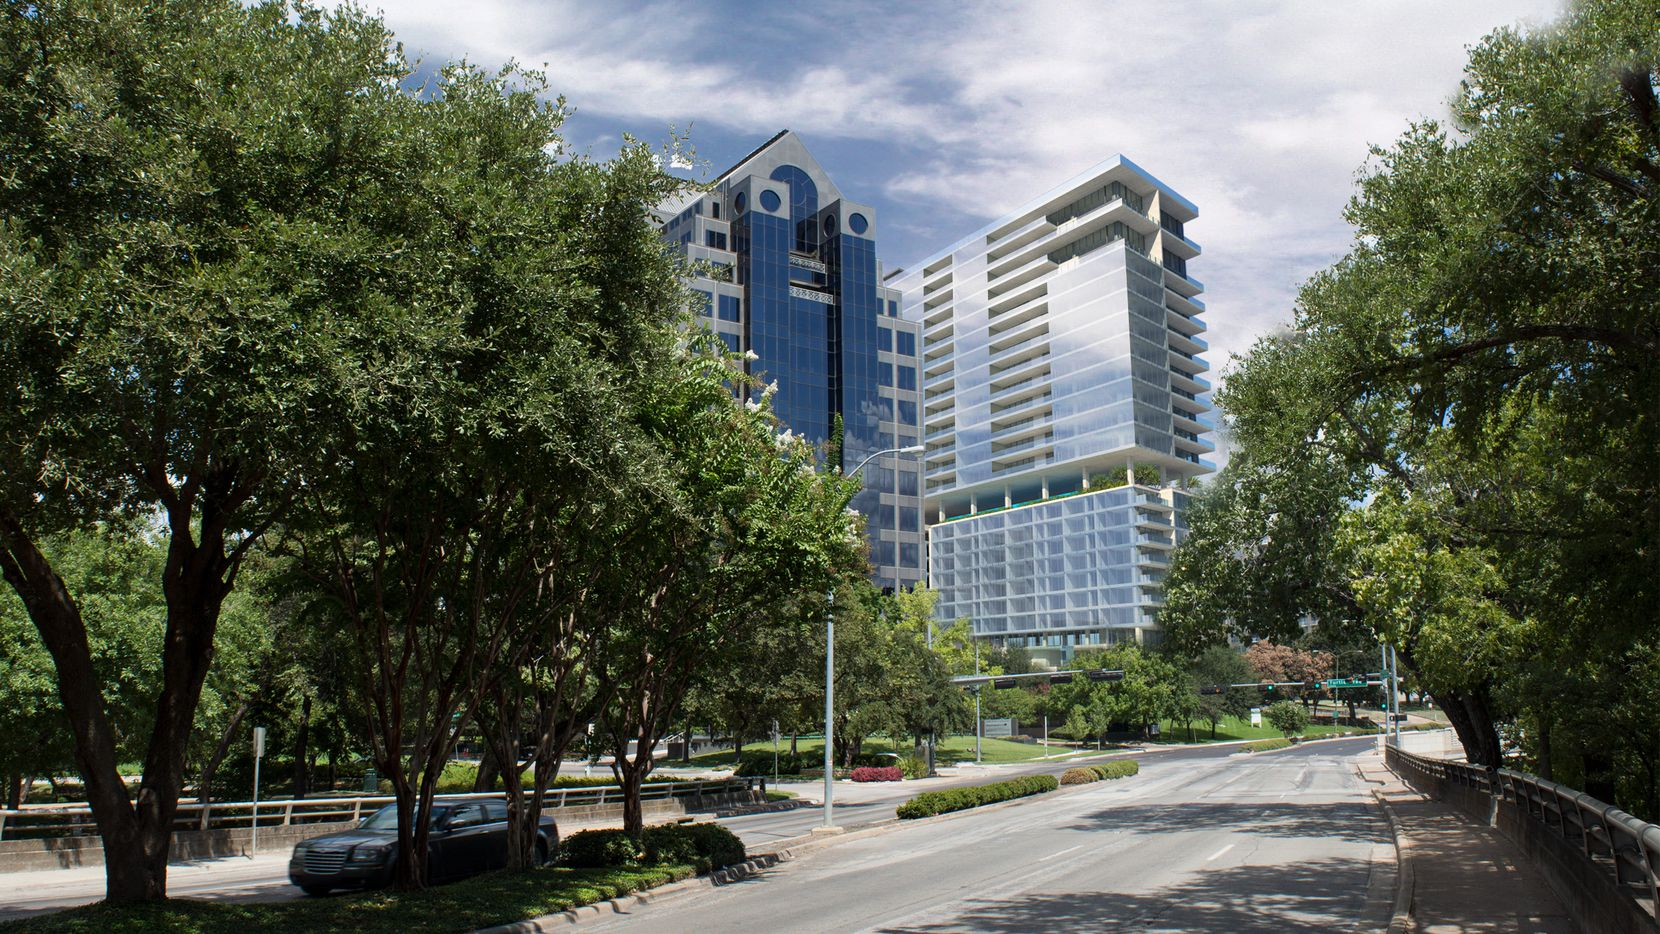 The modern glass and concrete high-rise will include a luxury hotel and condominiums.